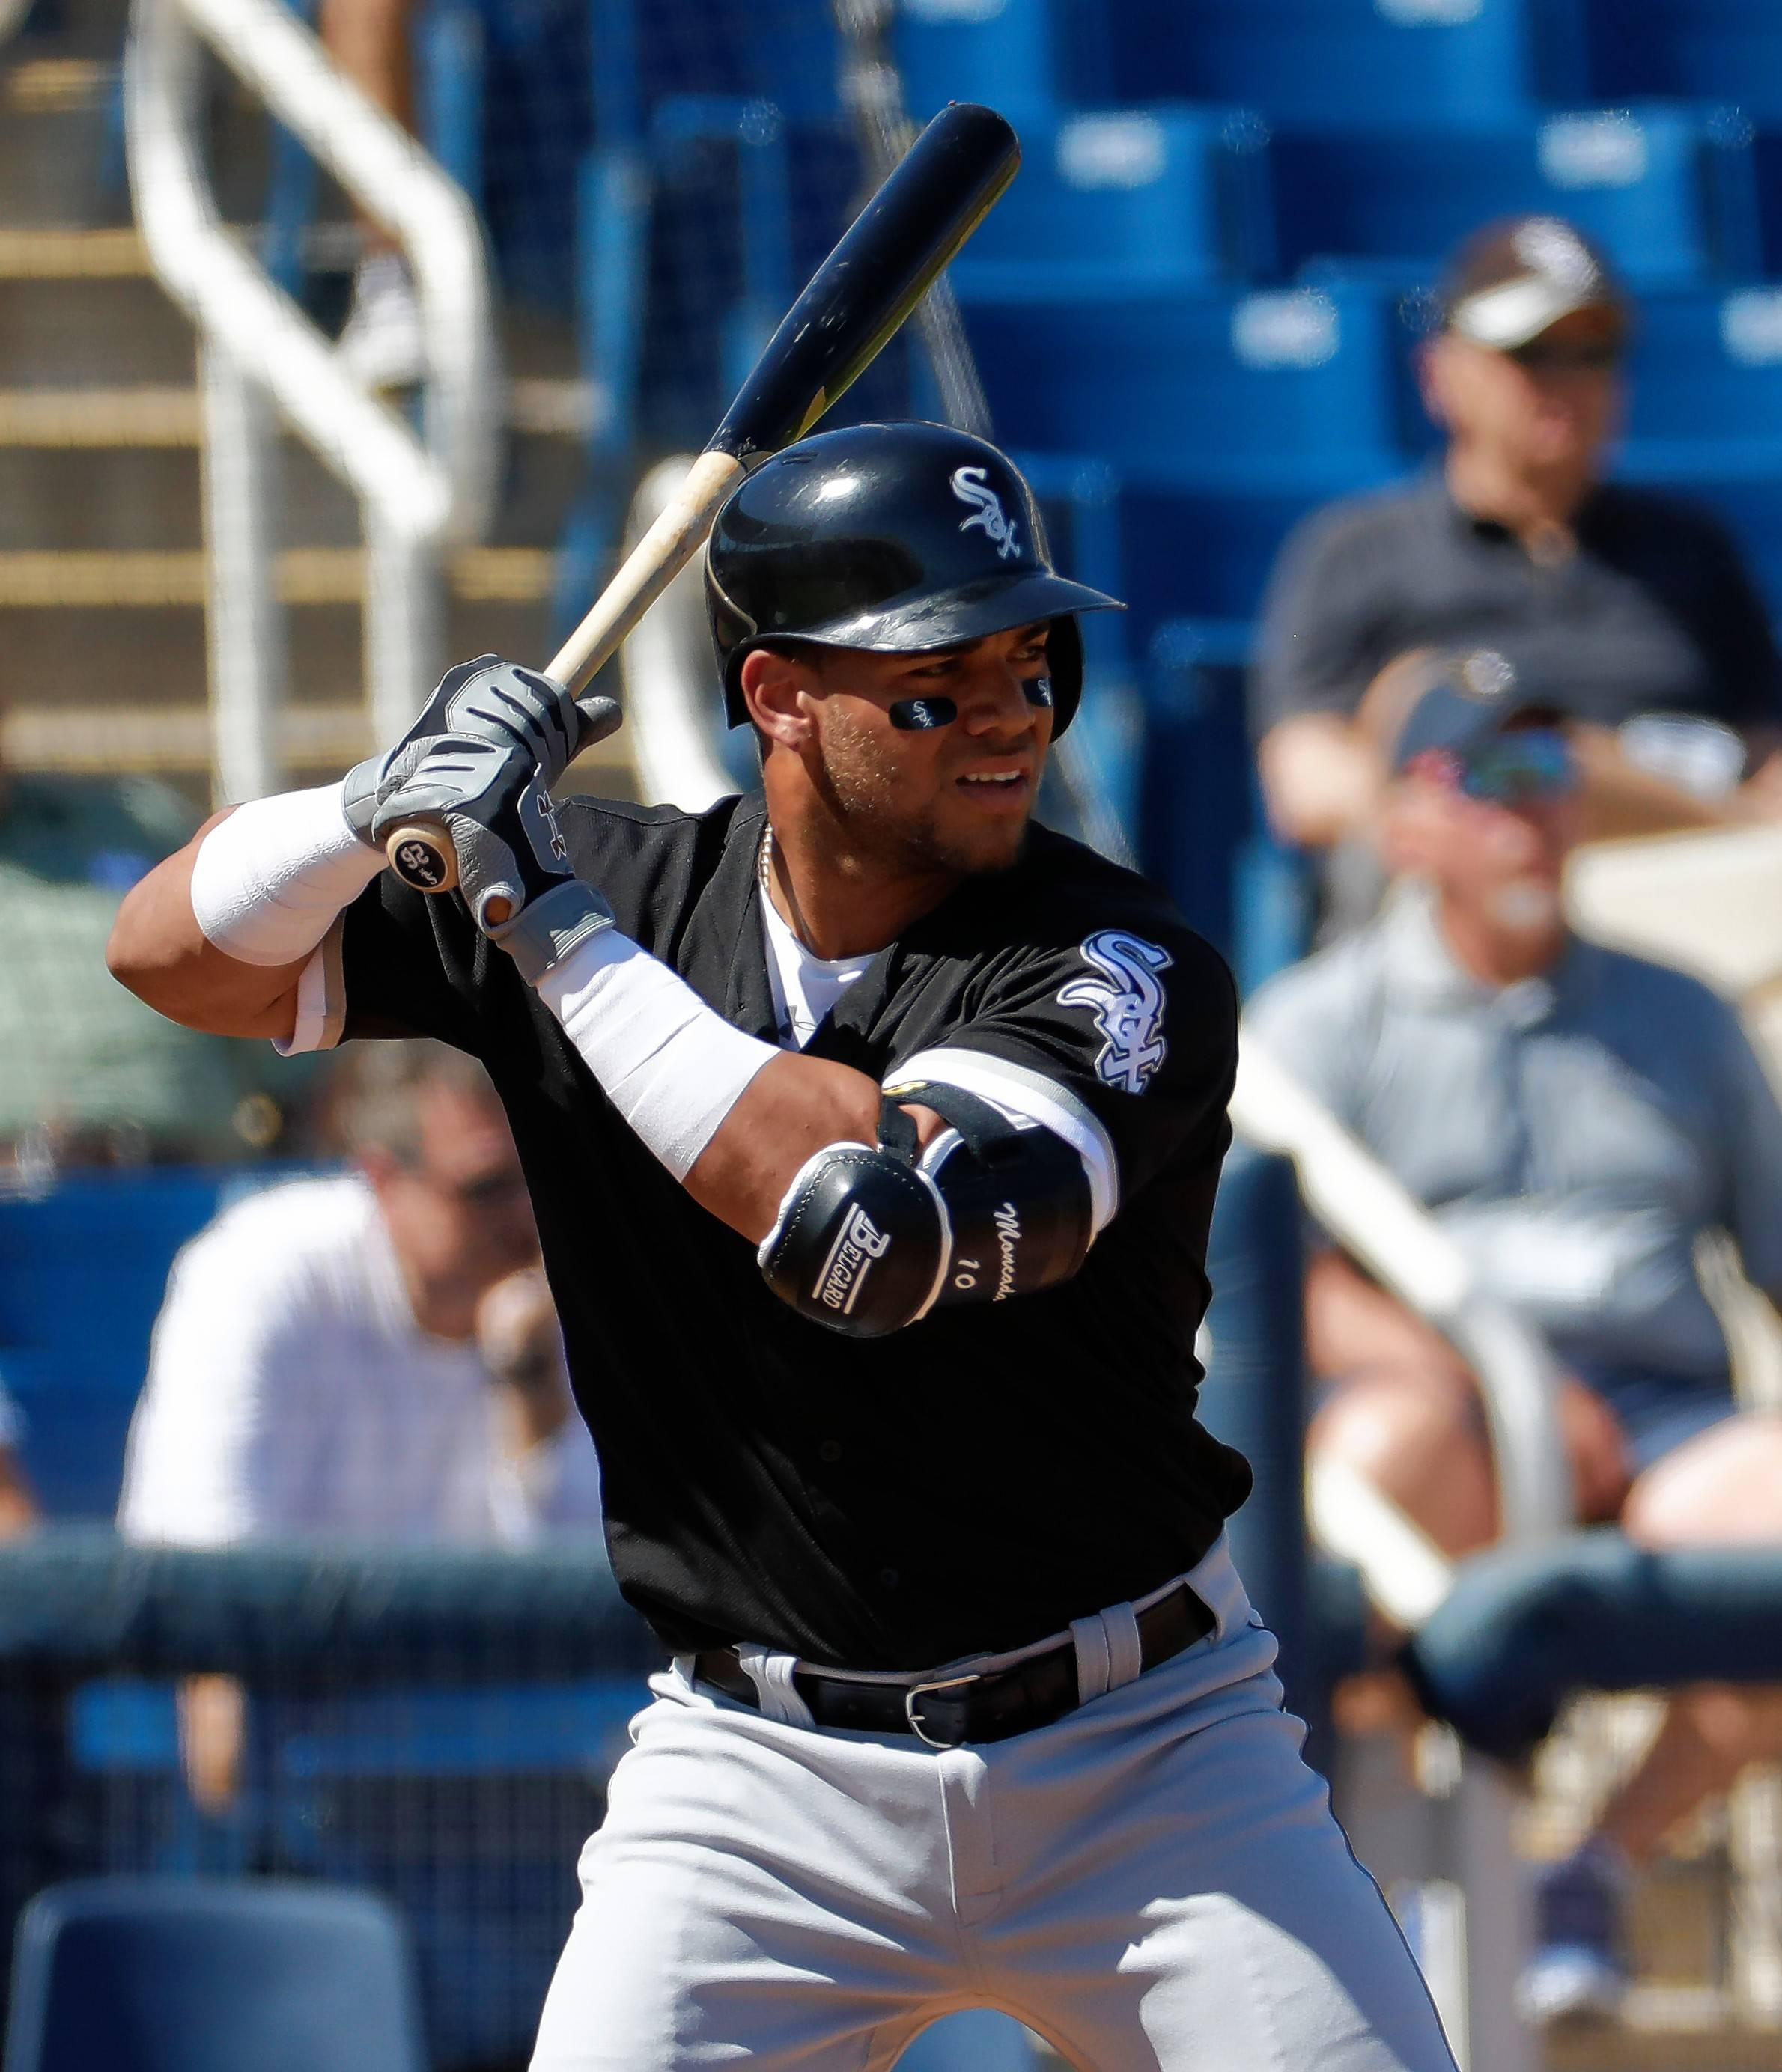 Chicago White Sox second baseman Yoan Moncada hits against the Milwaukee Brewers during the second inning of a spring training baseball game, Friday, March 10, 2017, in Phoenix.